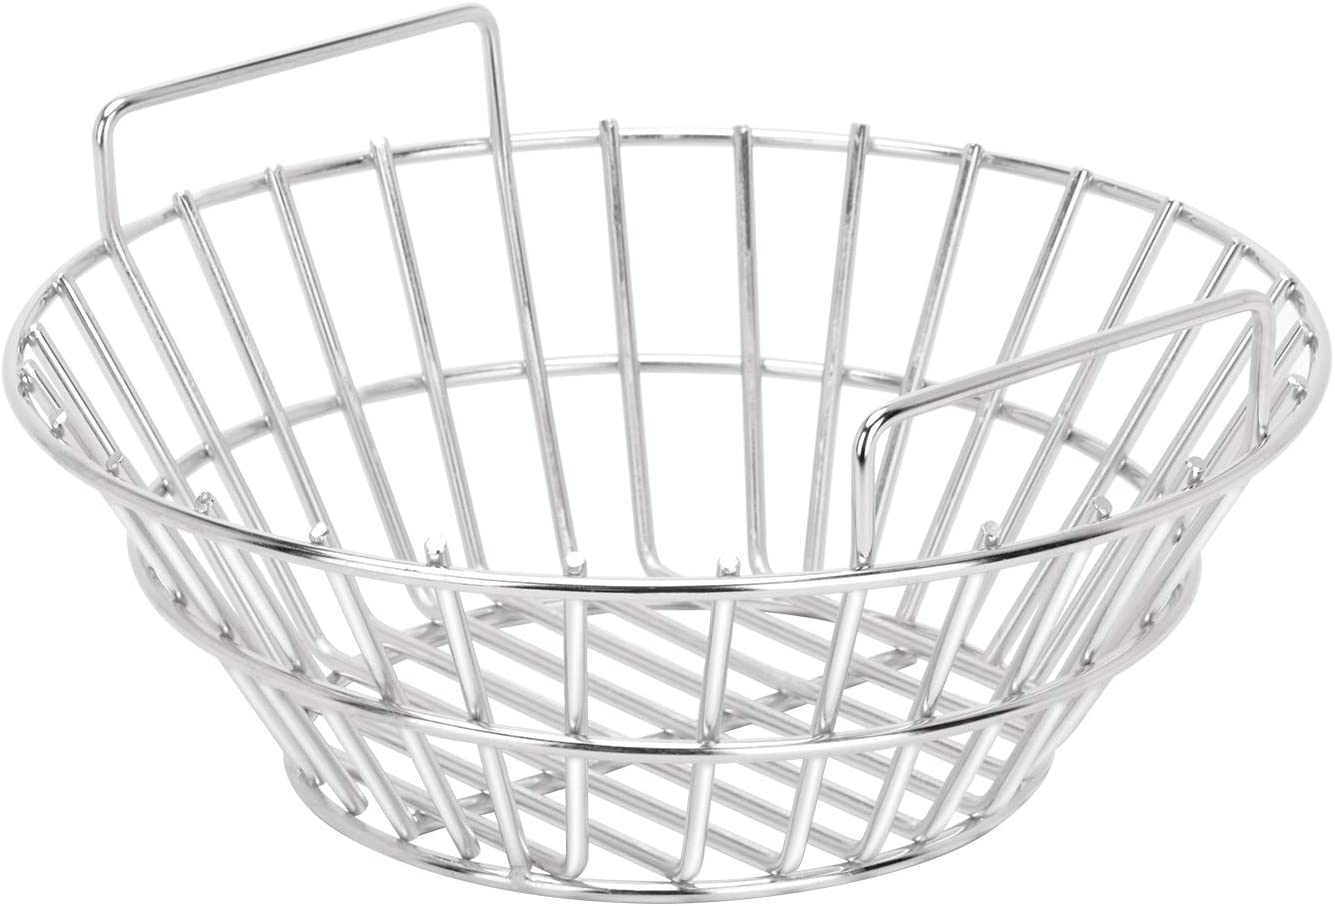 only fire #8566 Charcoal Ash Basket Stainless Steel Charcoal Holder with Handles, Grilling Accessories for Better Airflow, Fits Big Green Egg, Medium